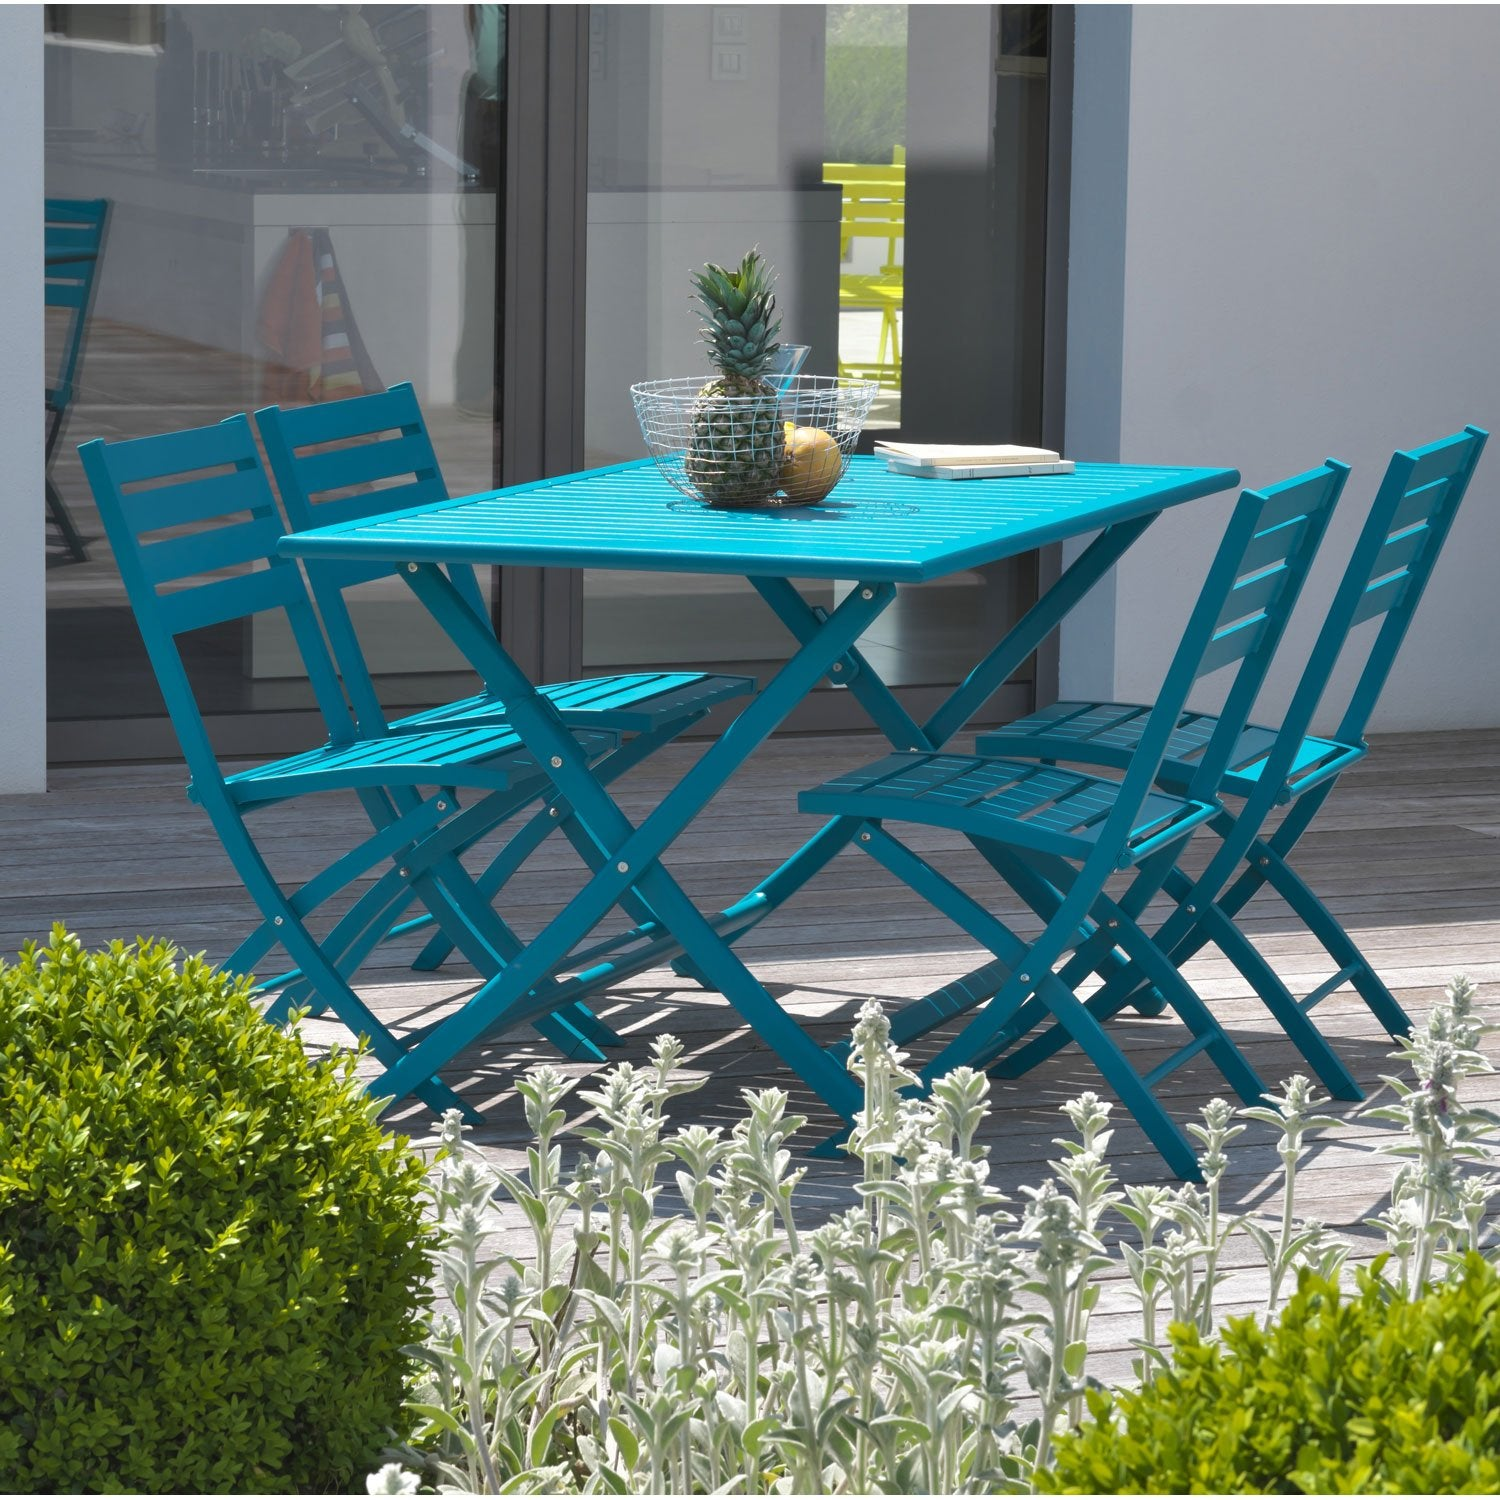 Stunning salon de jardin bleu vert contemporary awesome for Salon jardin bleu